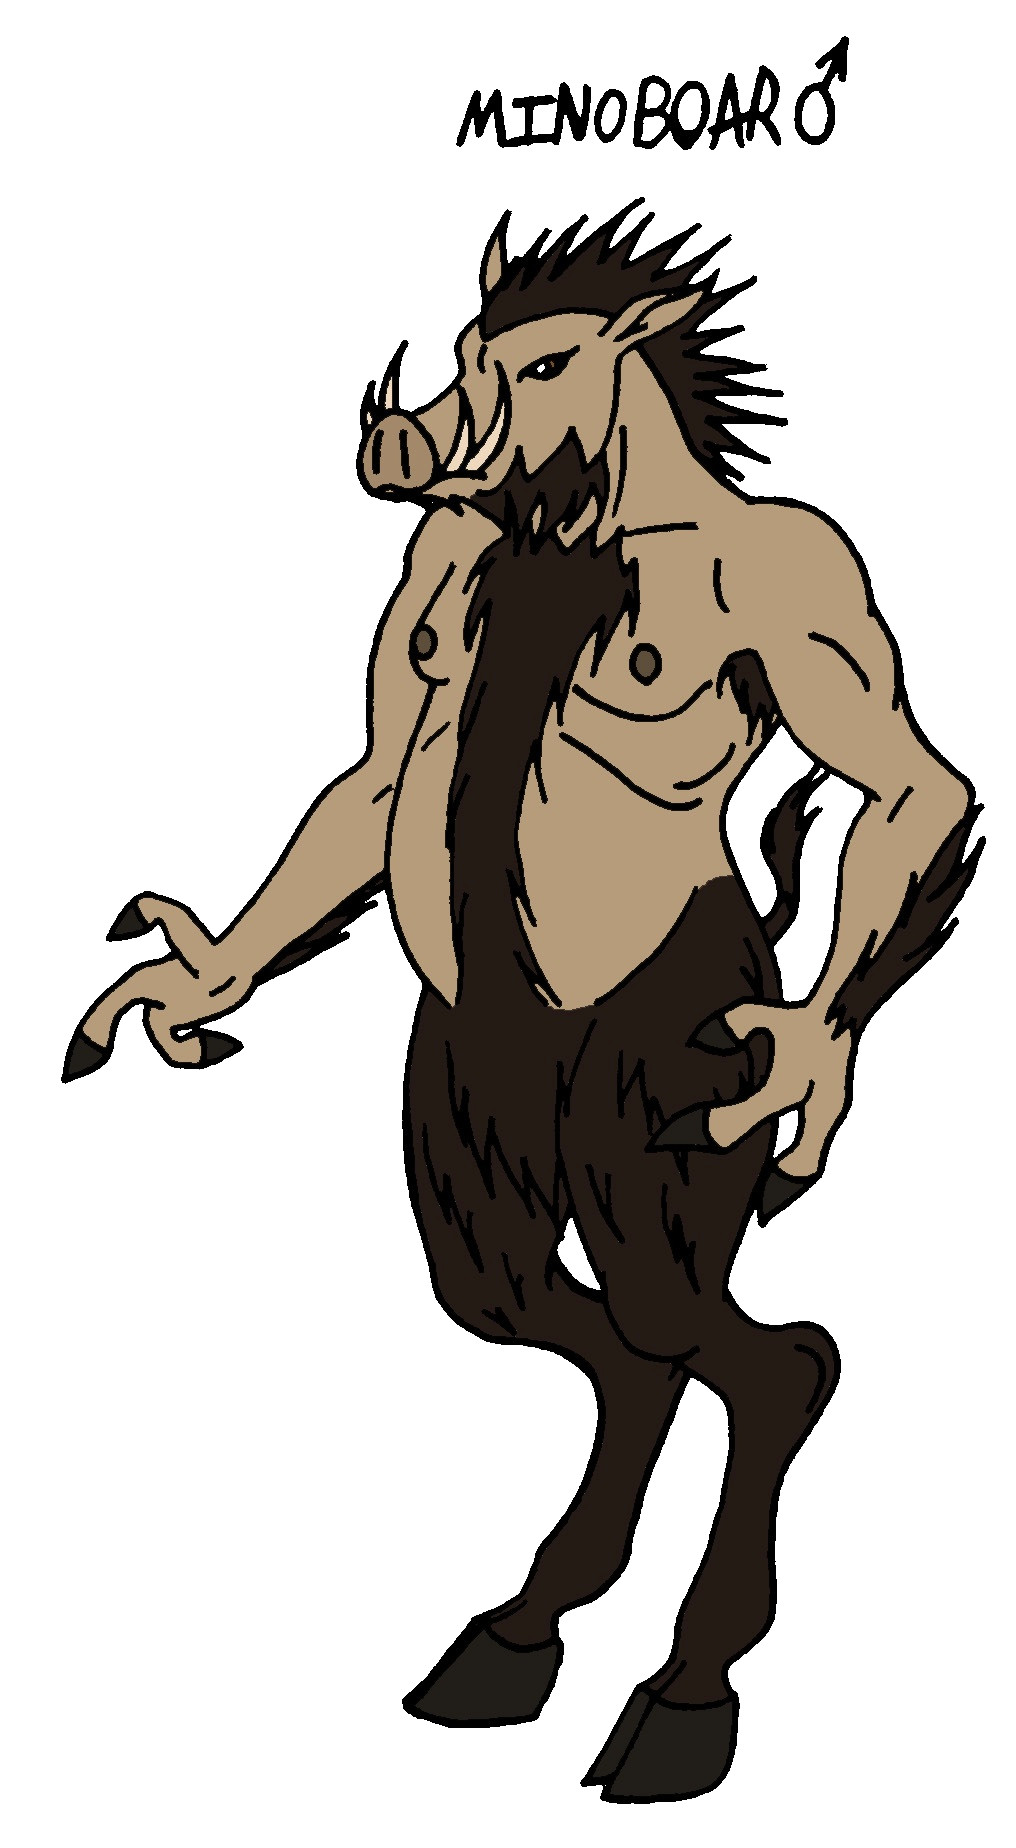 1016x1848 Narnia Races Male Minoboar By Jakegothicsnake D5tc1n2 Clip Art